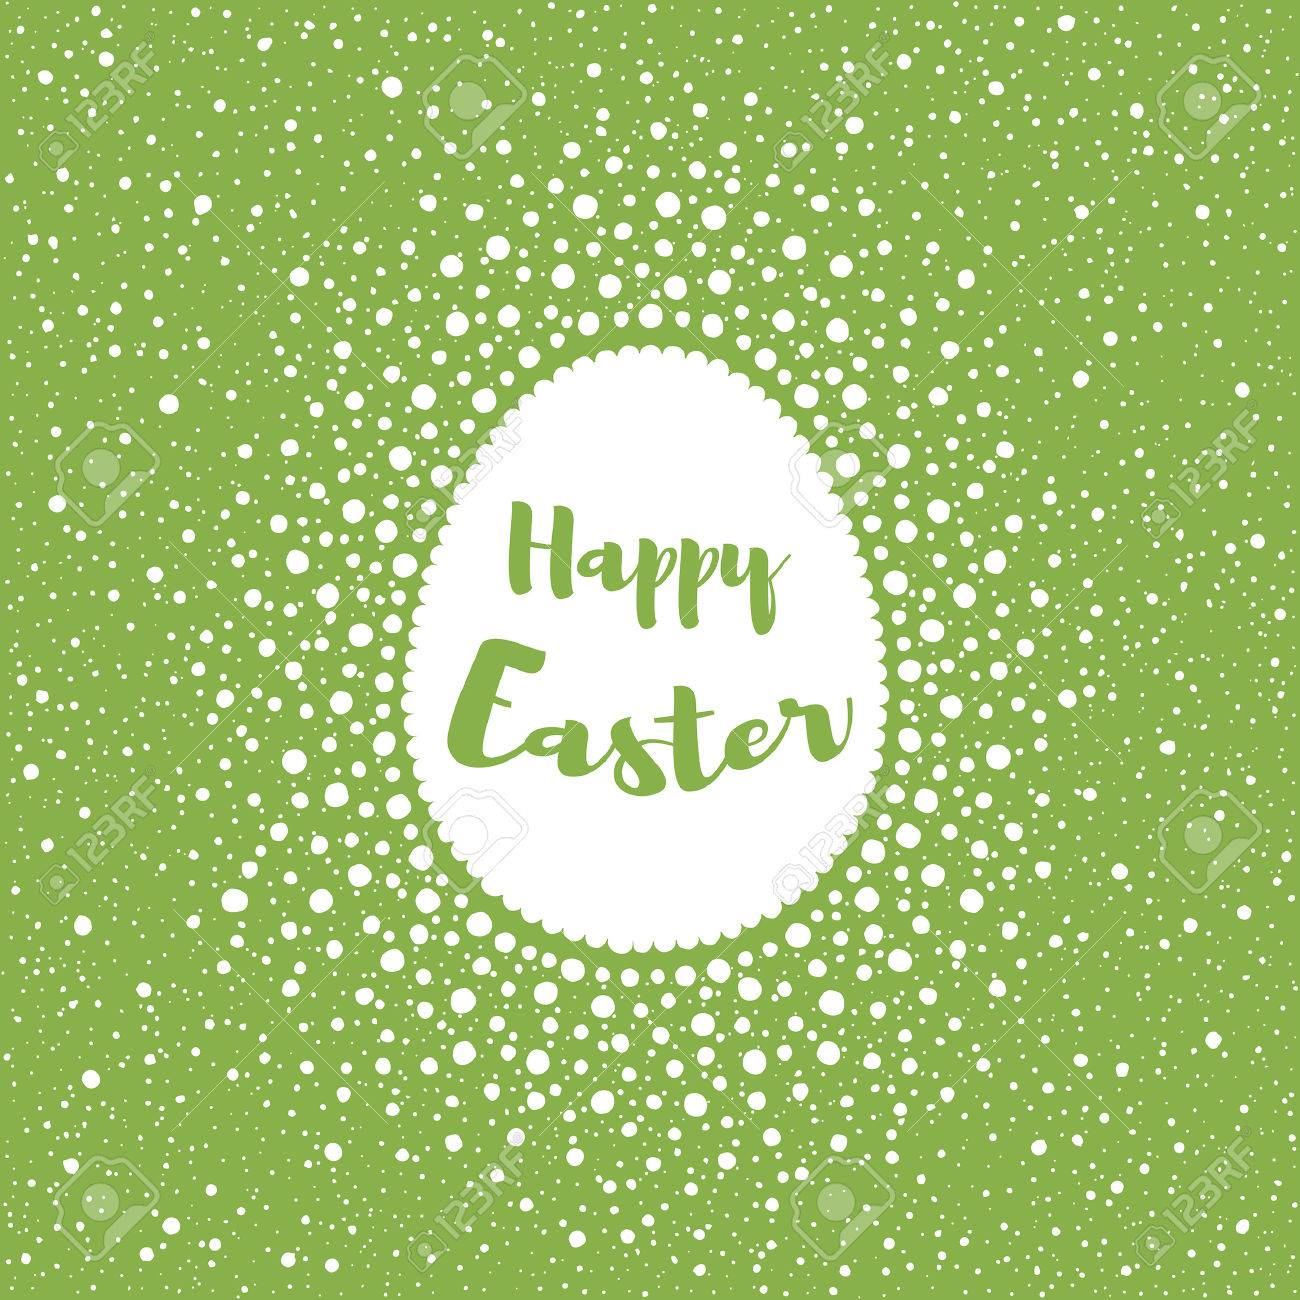 happy easter greeting card template splash or spray background